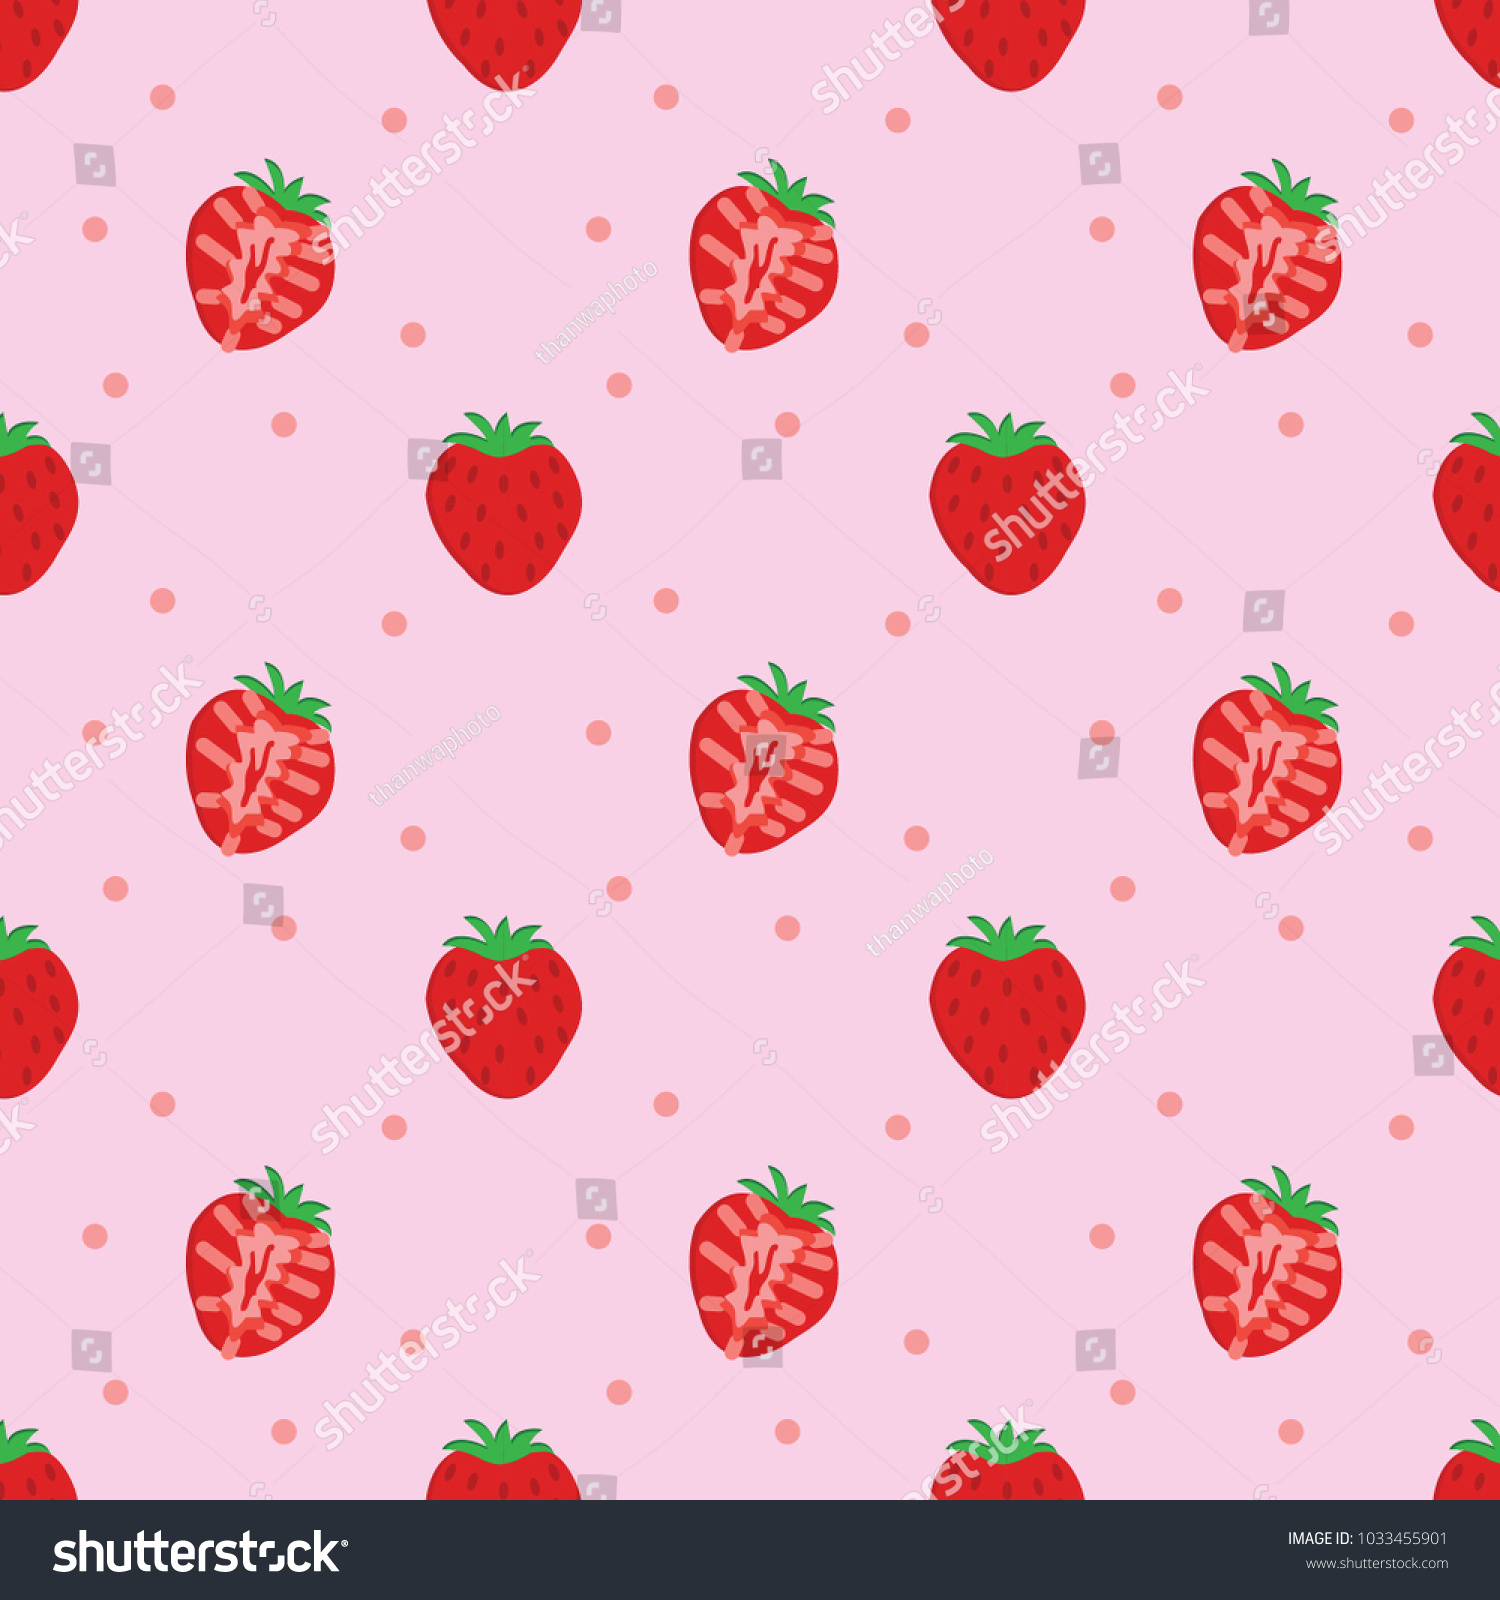 Seamless Strawberry Pattern Background Wallpaper Isolated On Pink